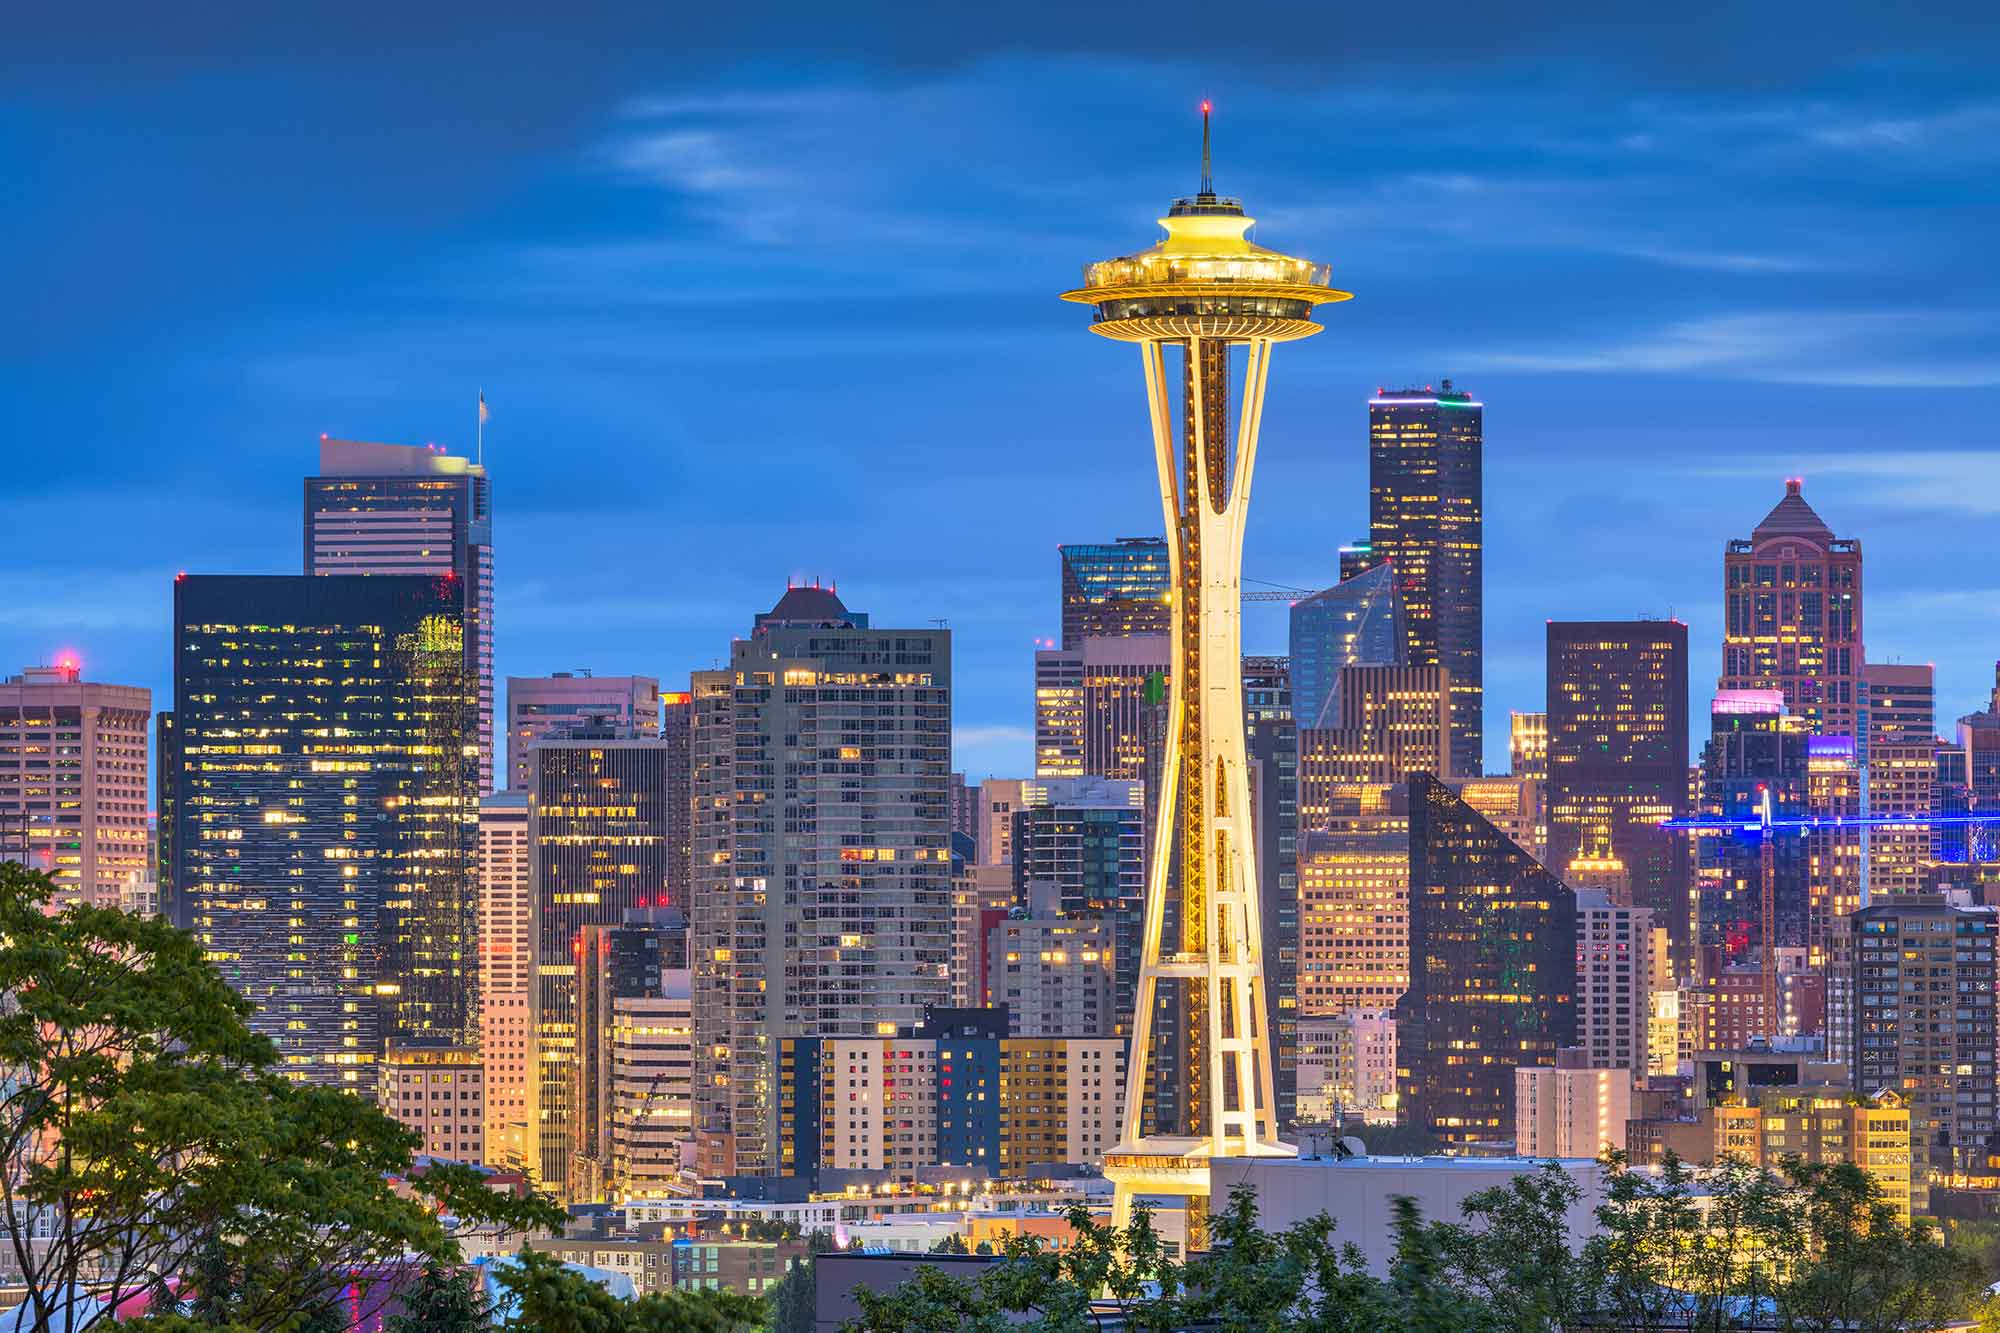 A view of the Seattle sky line and Space Needle.